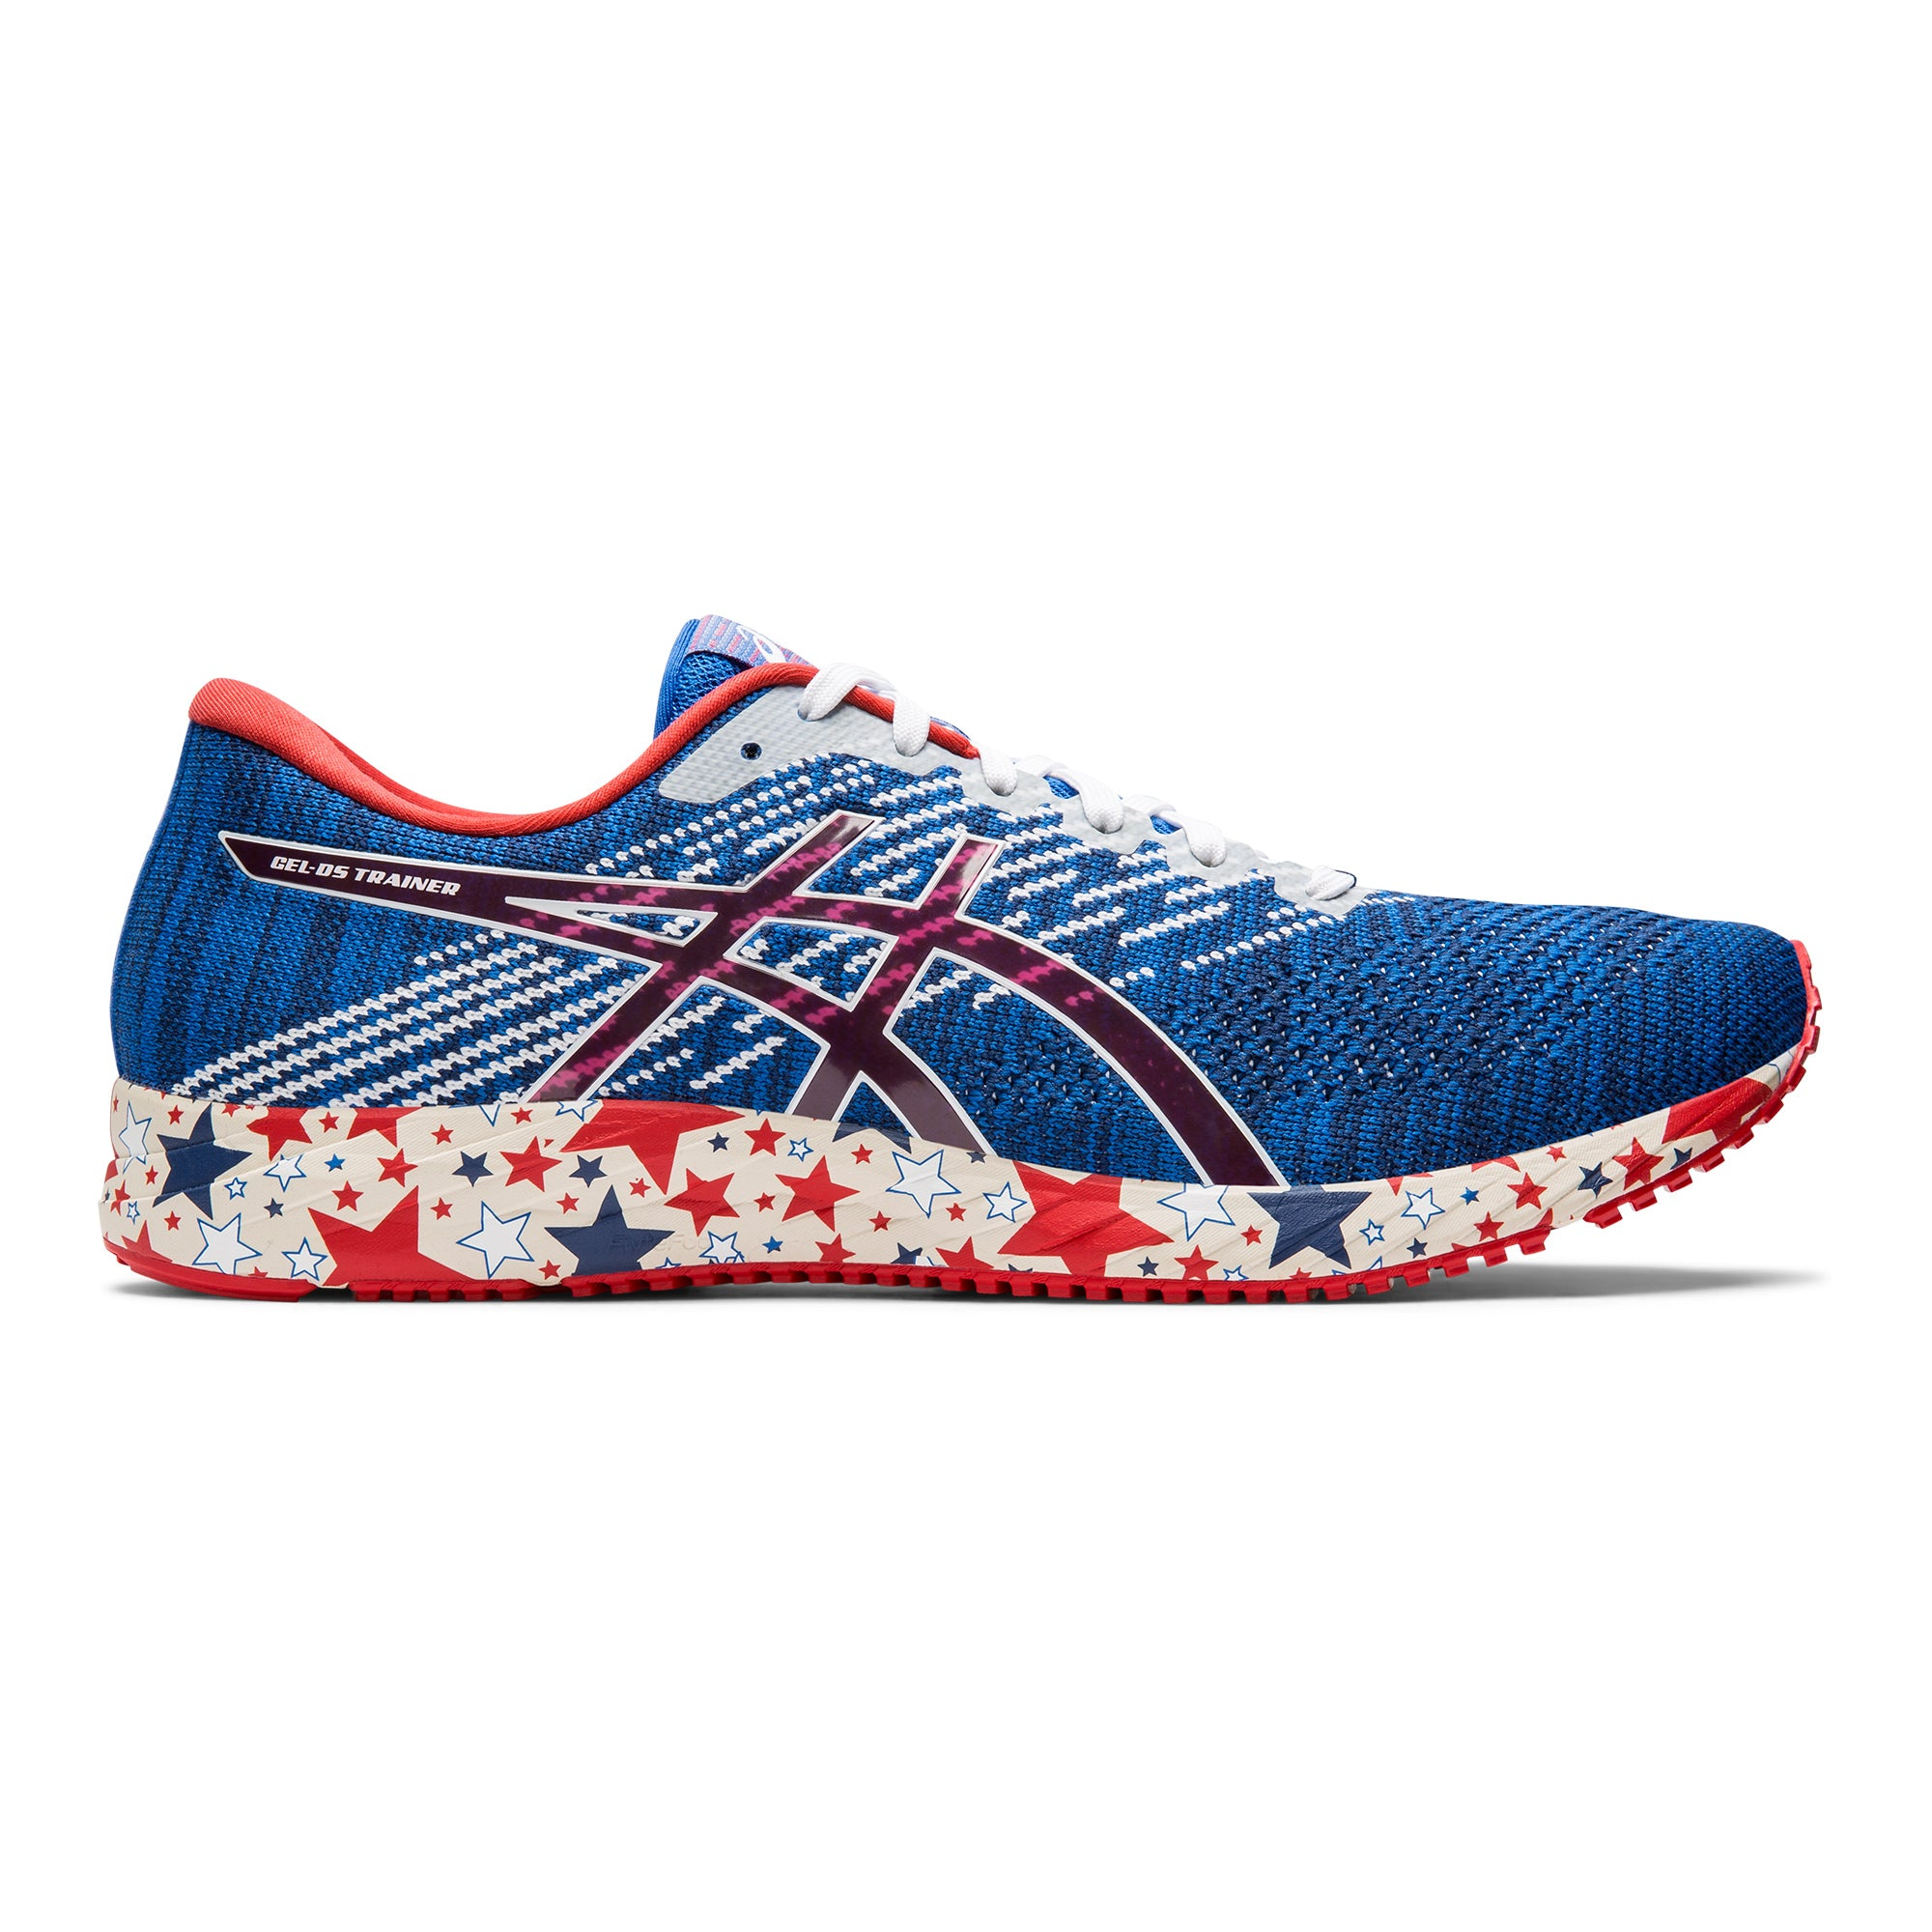 Blue Sports Breathable Asics Womens Gel-Nimbus 21 Running Shoes Trainers